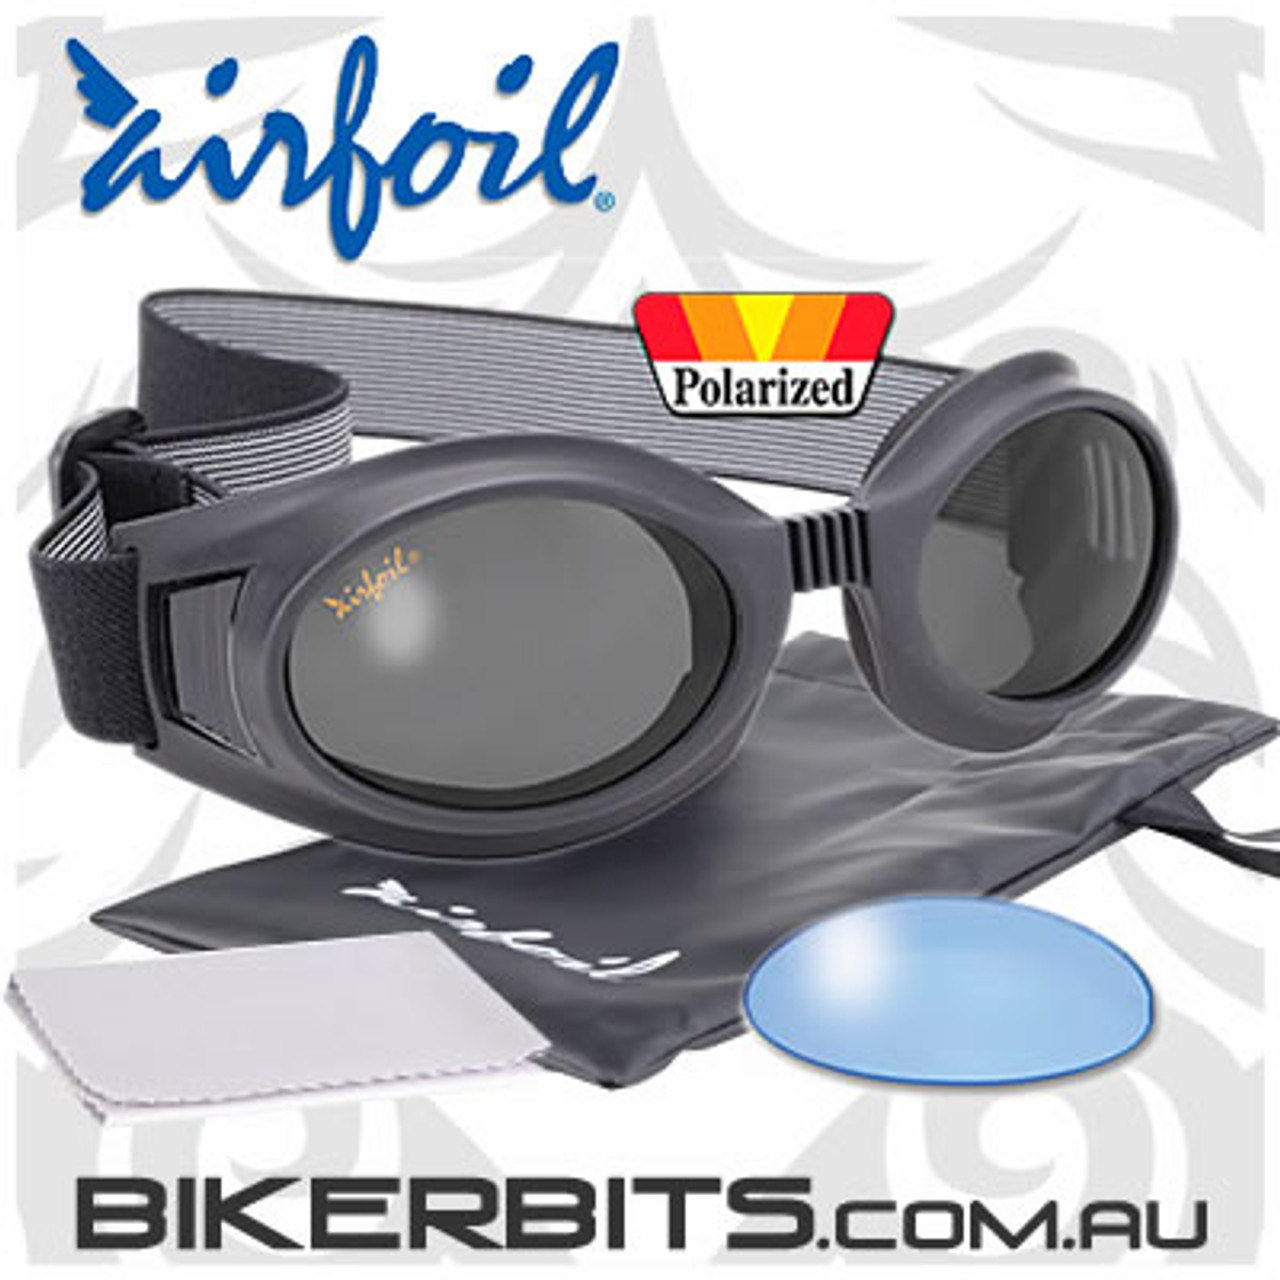 Motorcycle Sunglasses/Goggles - Airfoils - 7617 - Polarized Grey